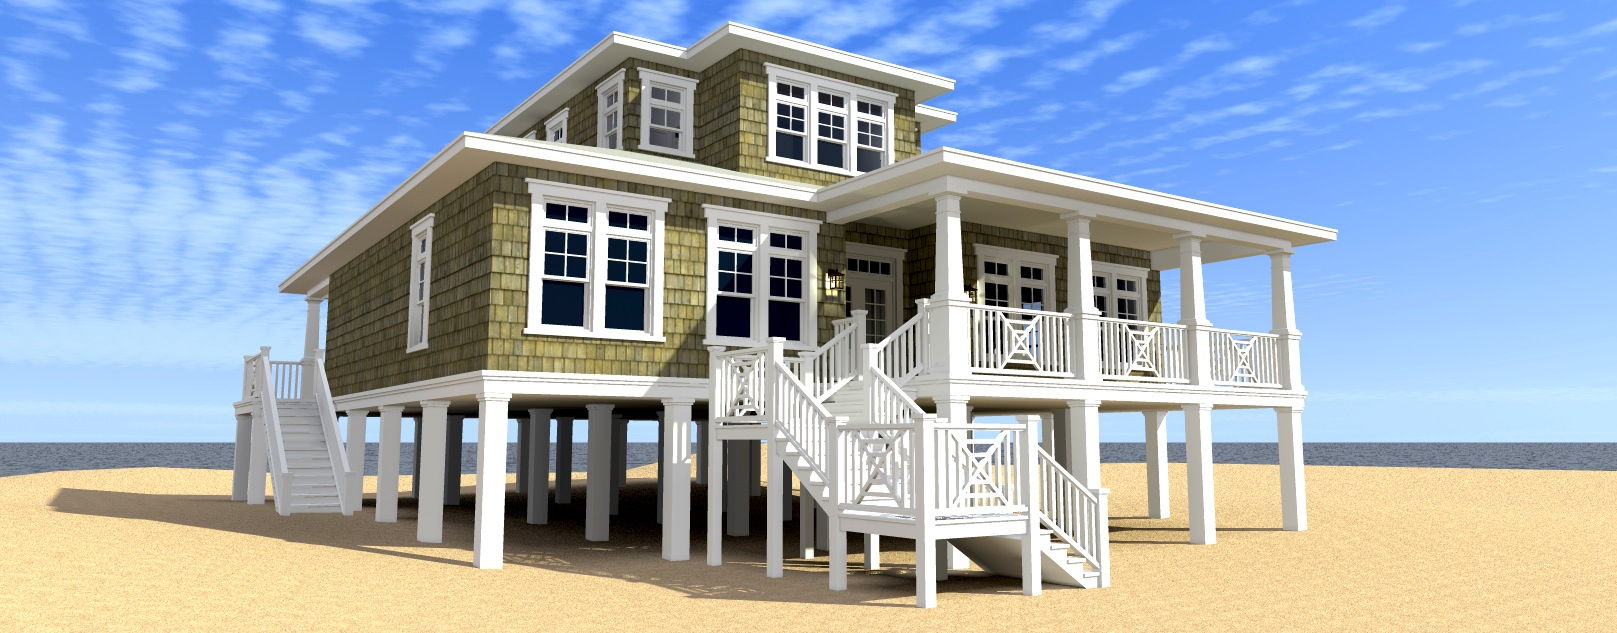 Scuppers house plan tyree house plans for 4 story beach house plans